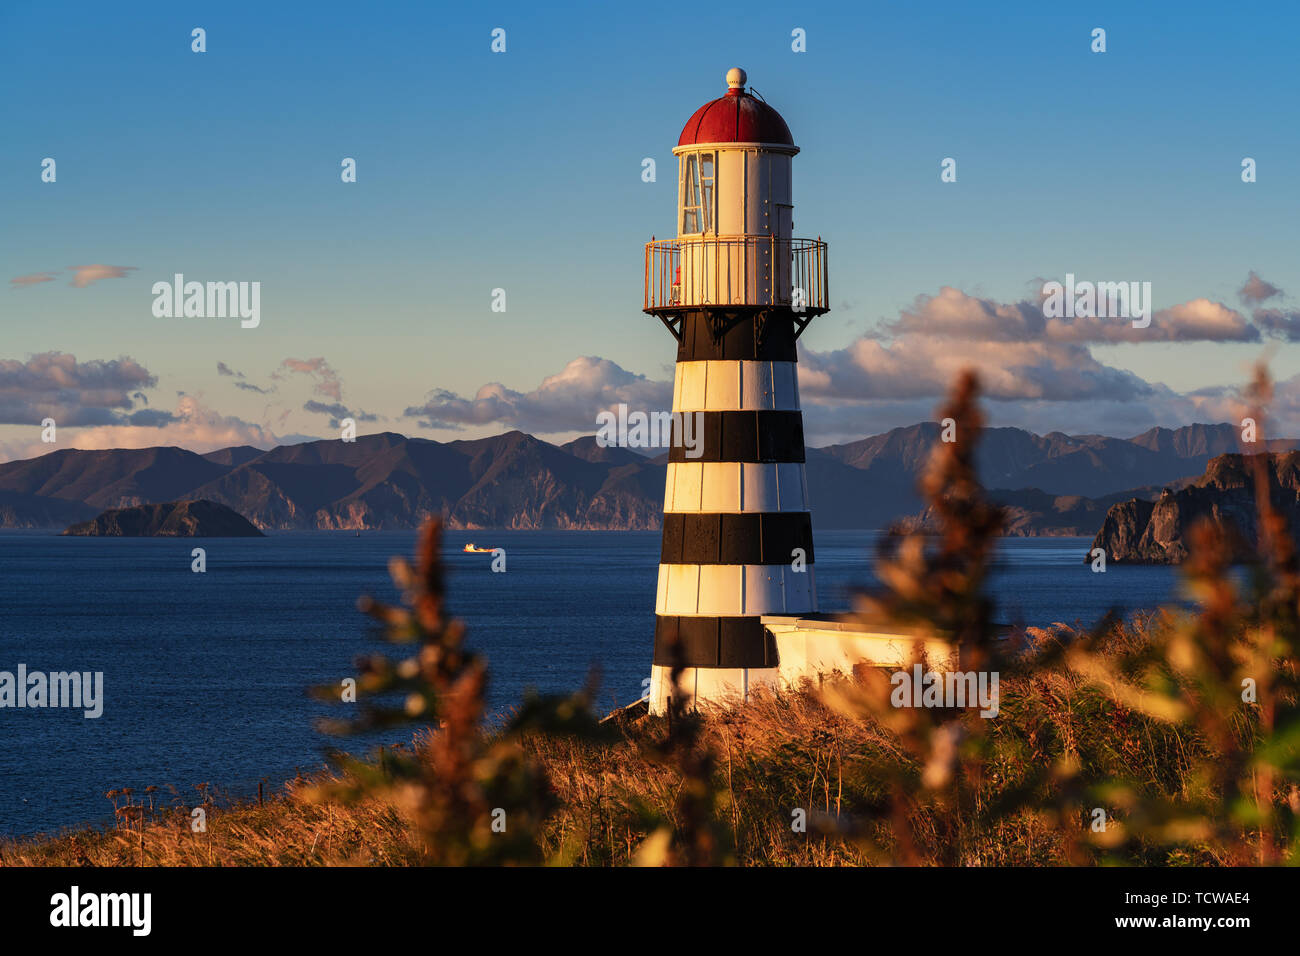 Petropavlovsky Lighthouse (founded in 1850) - oldest lighthouse in Russian Far East, located on Kamchatka Peninsula on shore of Pacific Ocean Stock Photo